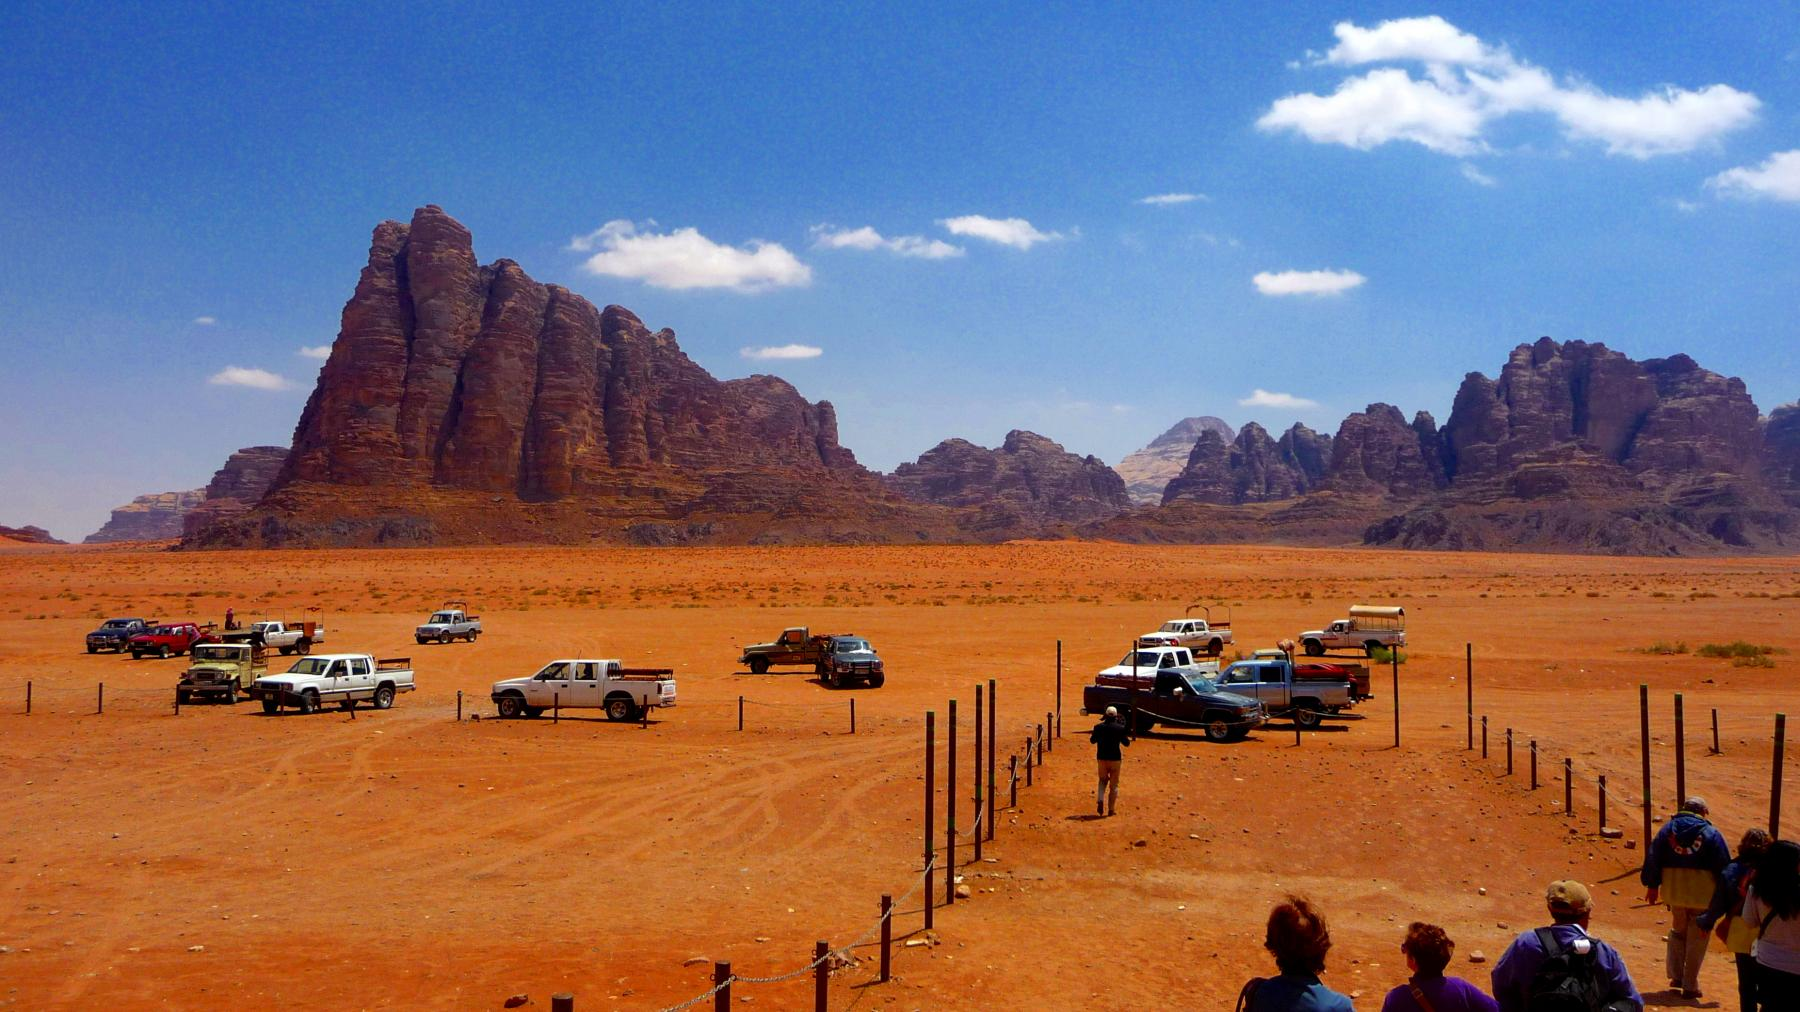 A Indiana Jones Adventure in Jordan ! :) starting at Amman, Amman Governorate, Jordan